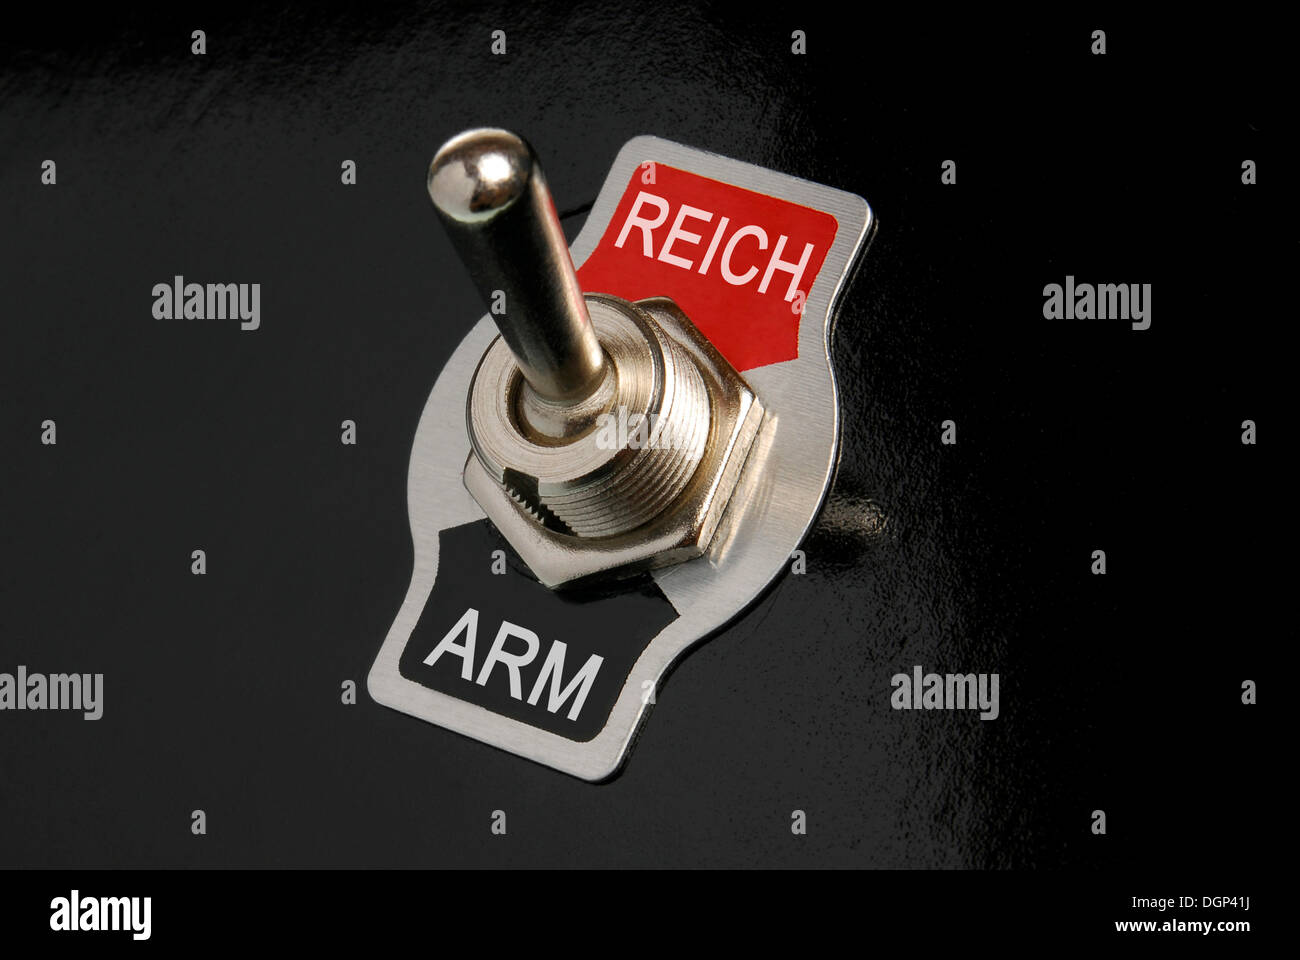 Toggle switch, labelled Reich and Arm, German for rich and poor, symbolic image - Stock Image